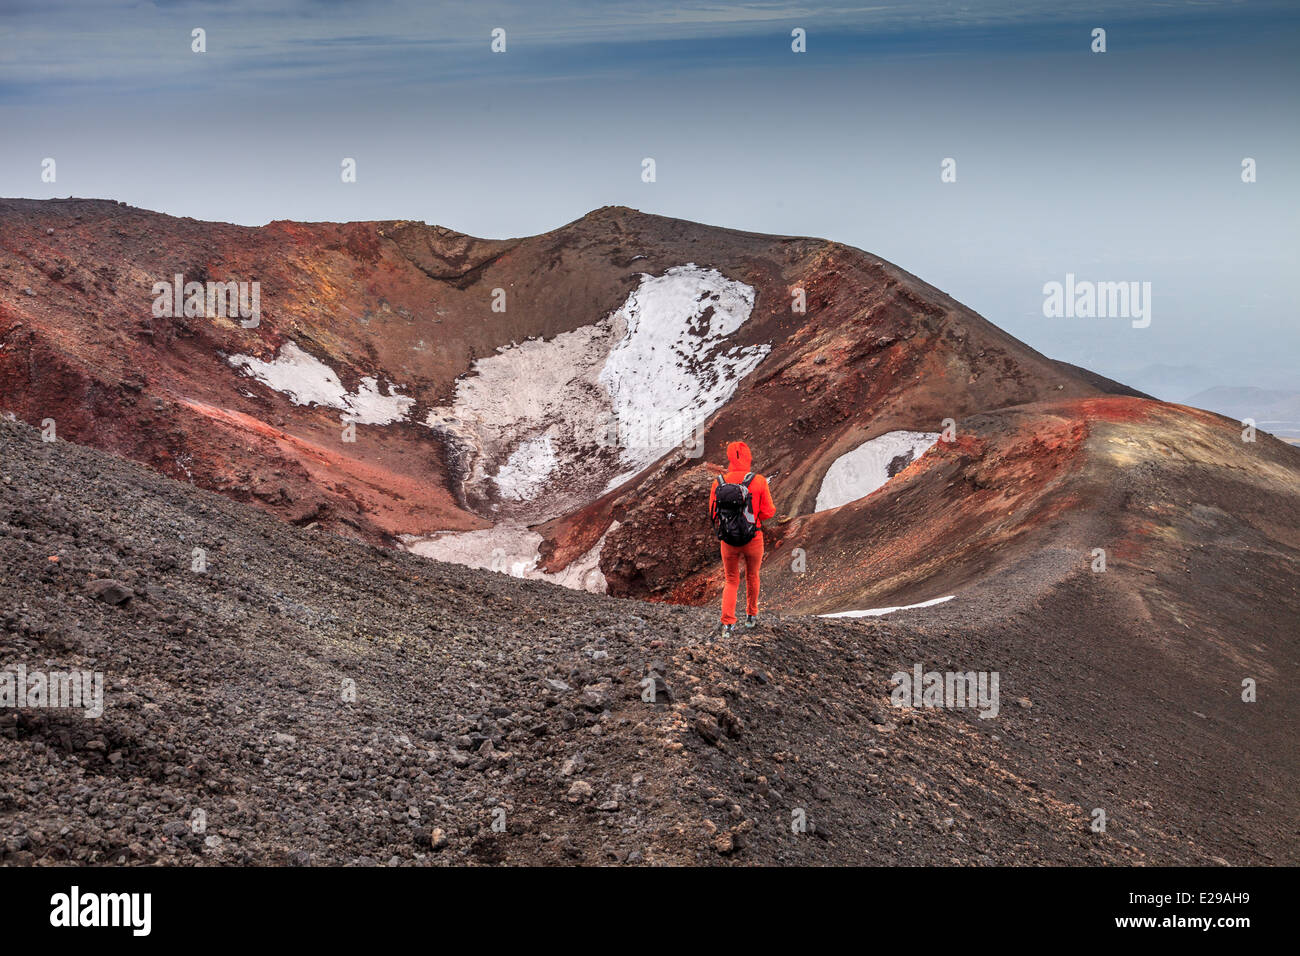 Hiking over  the top of mount Etna - Stock Image